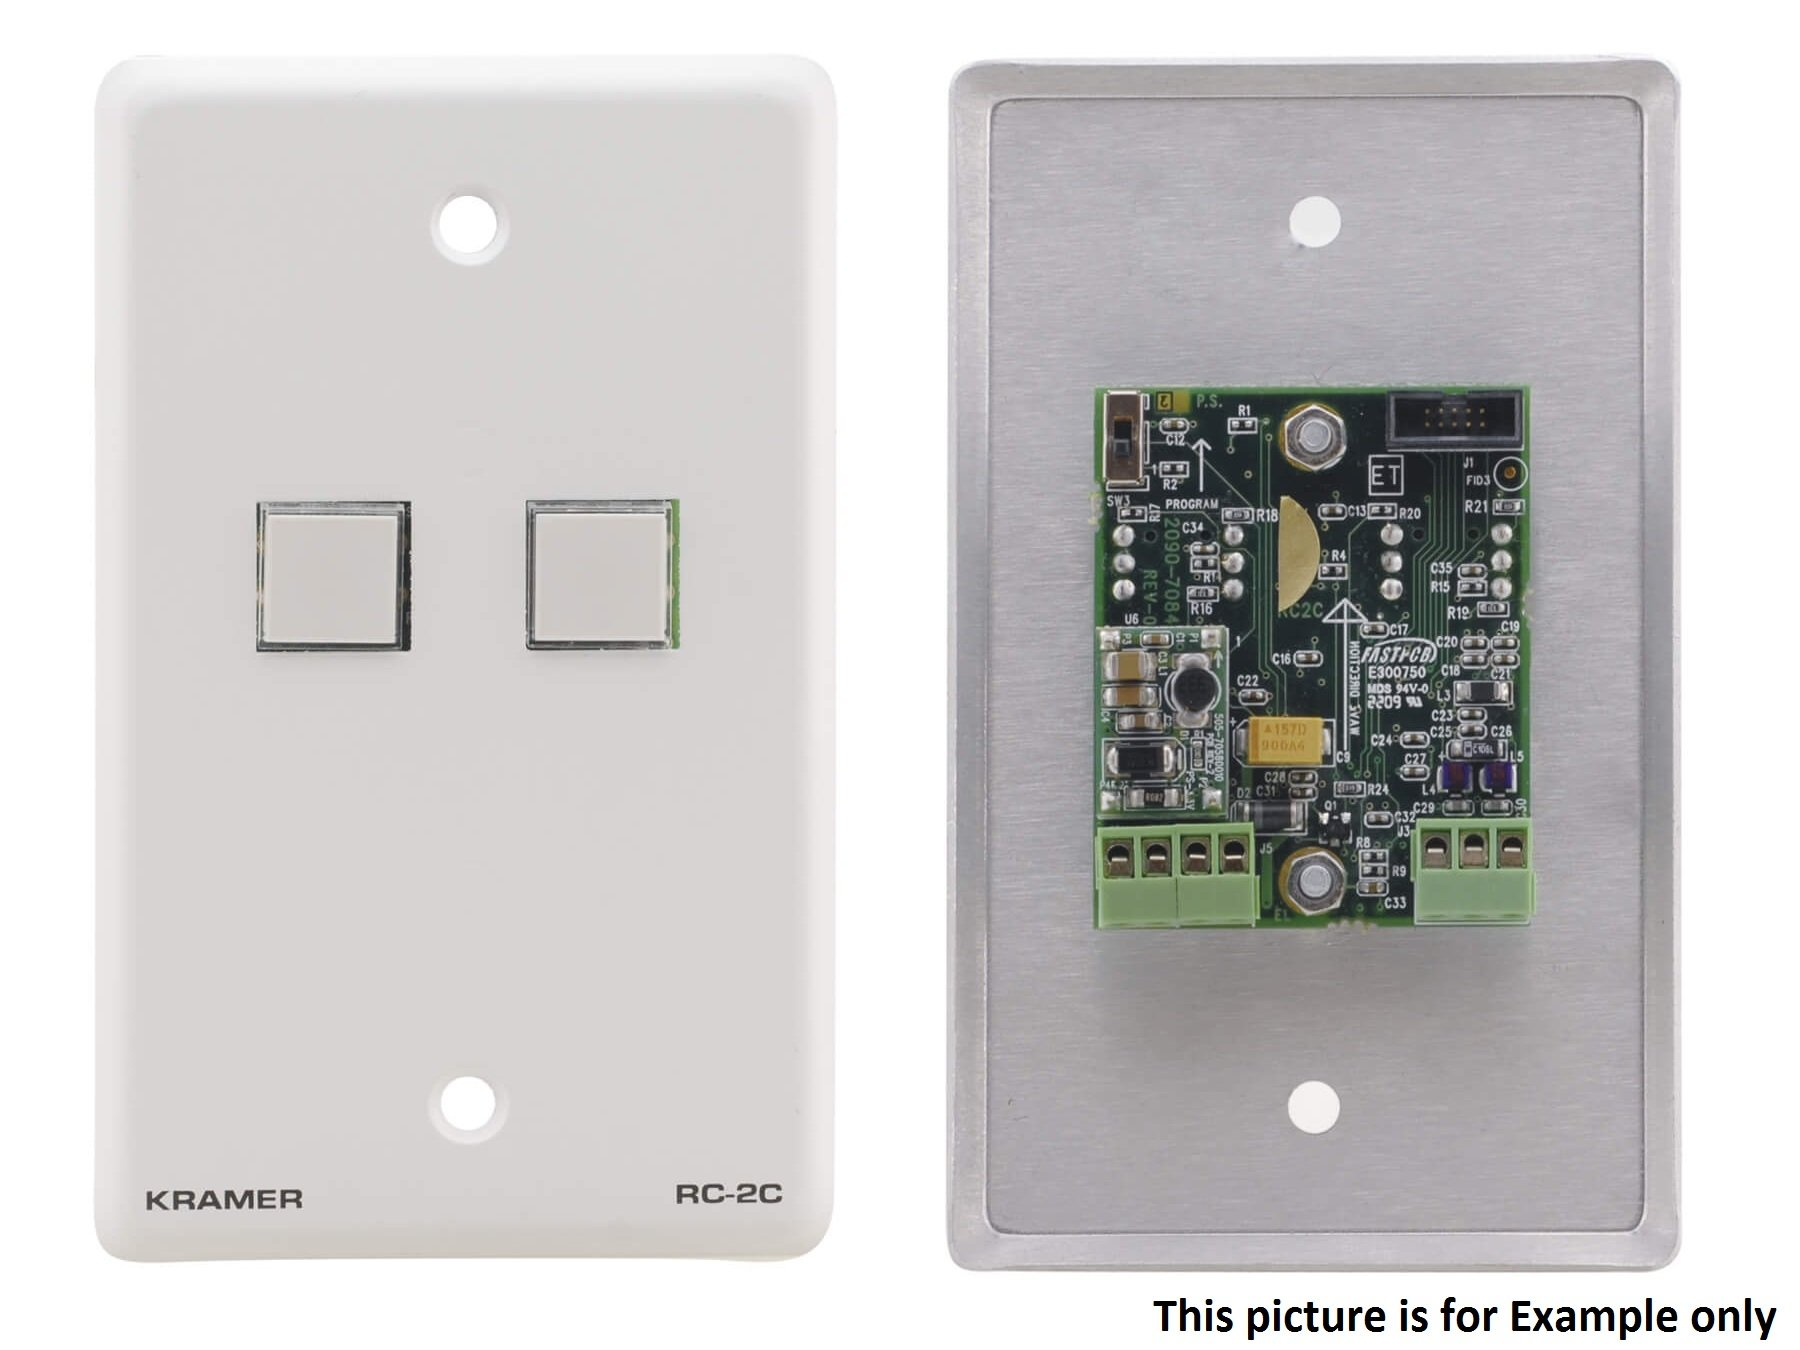 Kramer RC-2C(G) Wall Plate - RS-232 and IR Controller - Gray